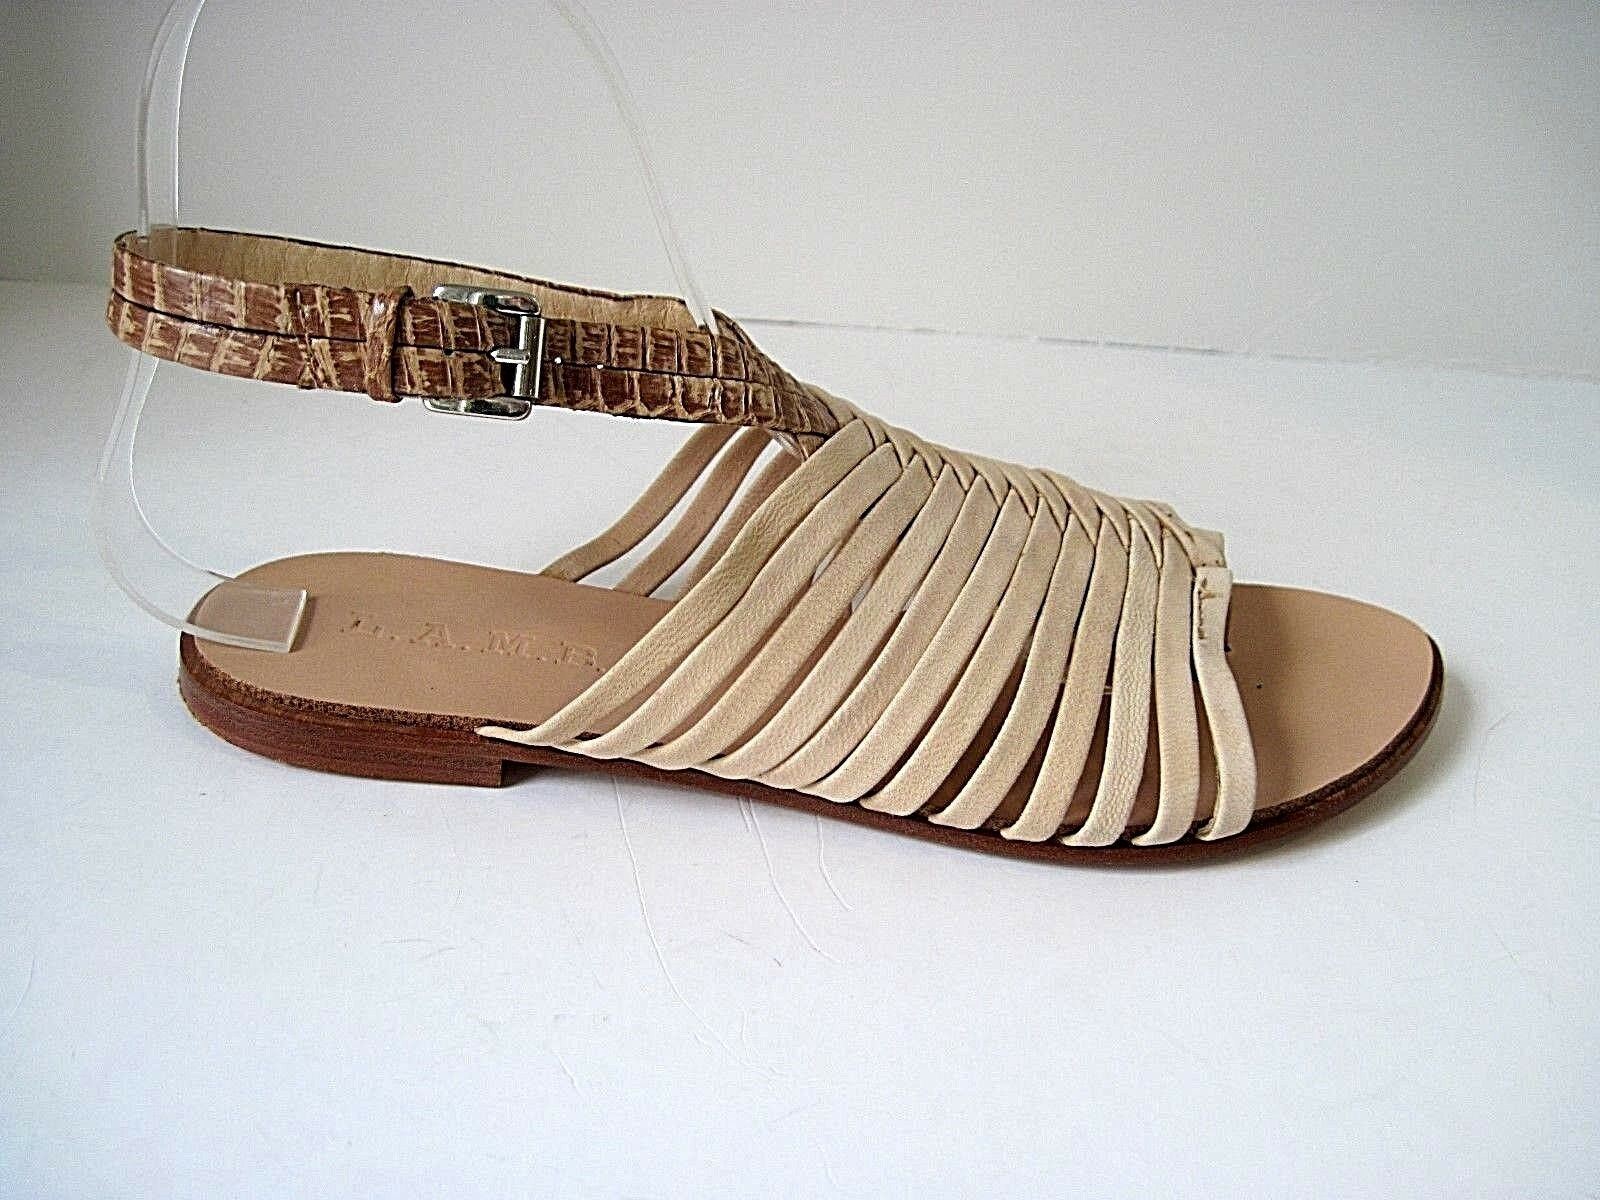 Womens L.A.M.B.beige leather strappy thong sandals flats shoes size 6M